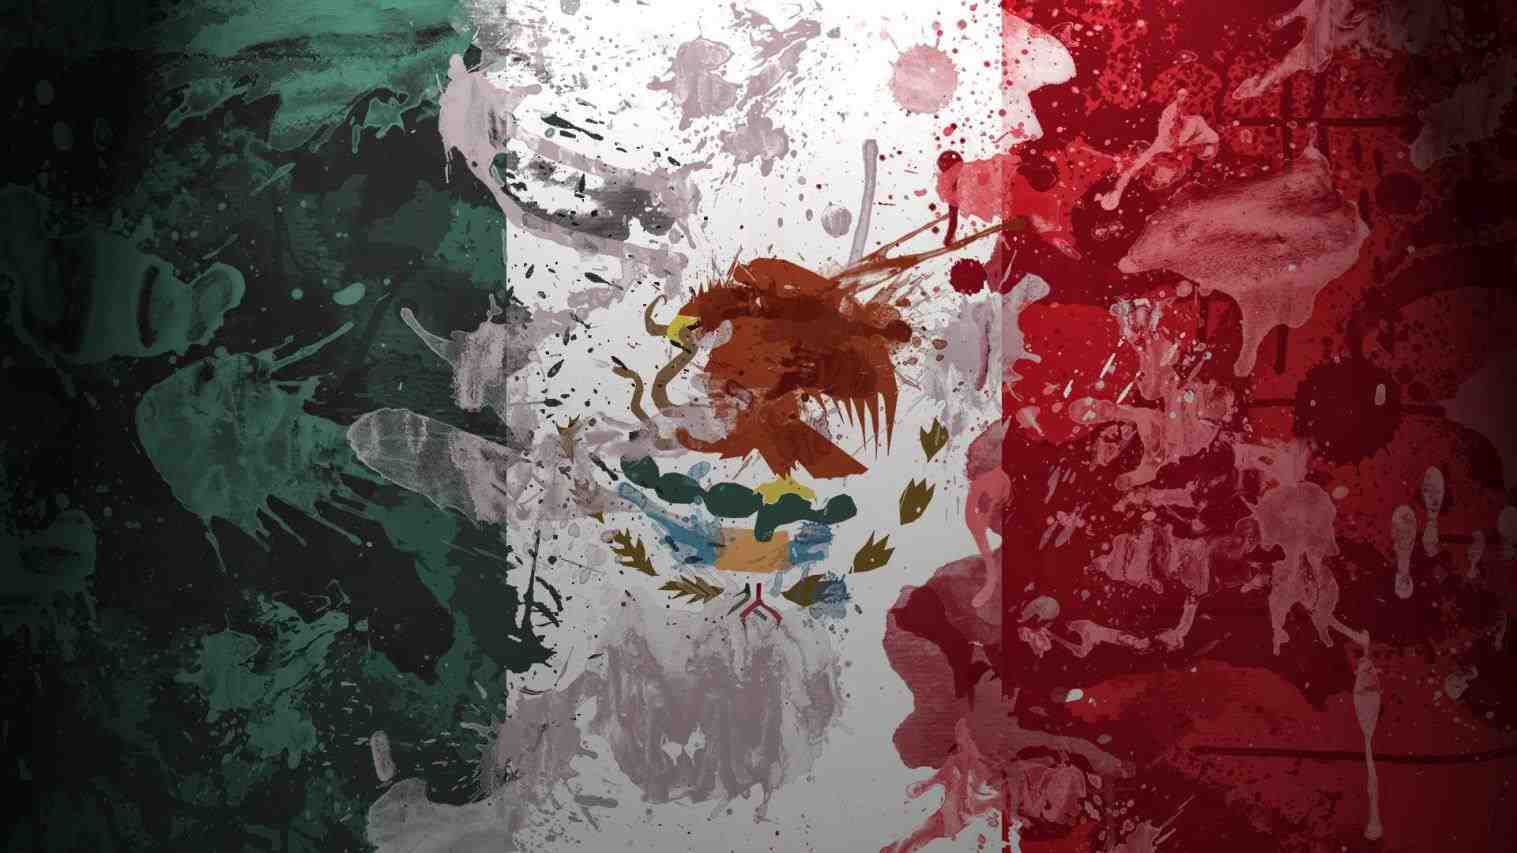 Mexican Colors Wallpaper in 2018 - excation.info